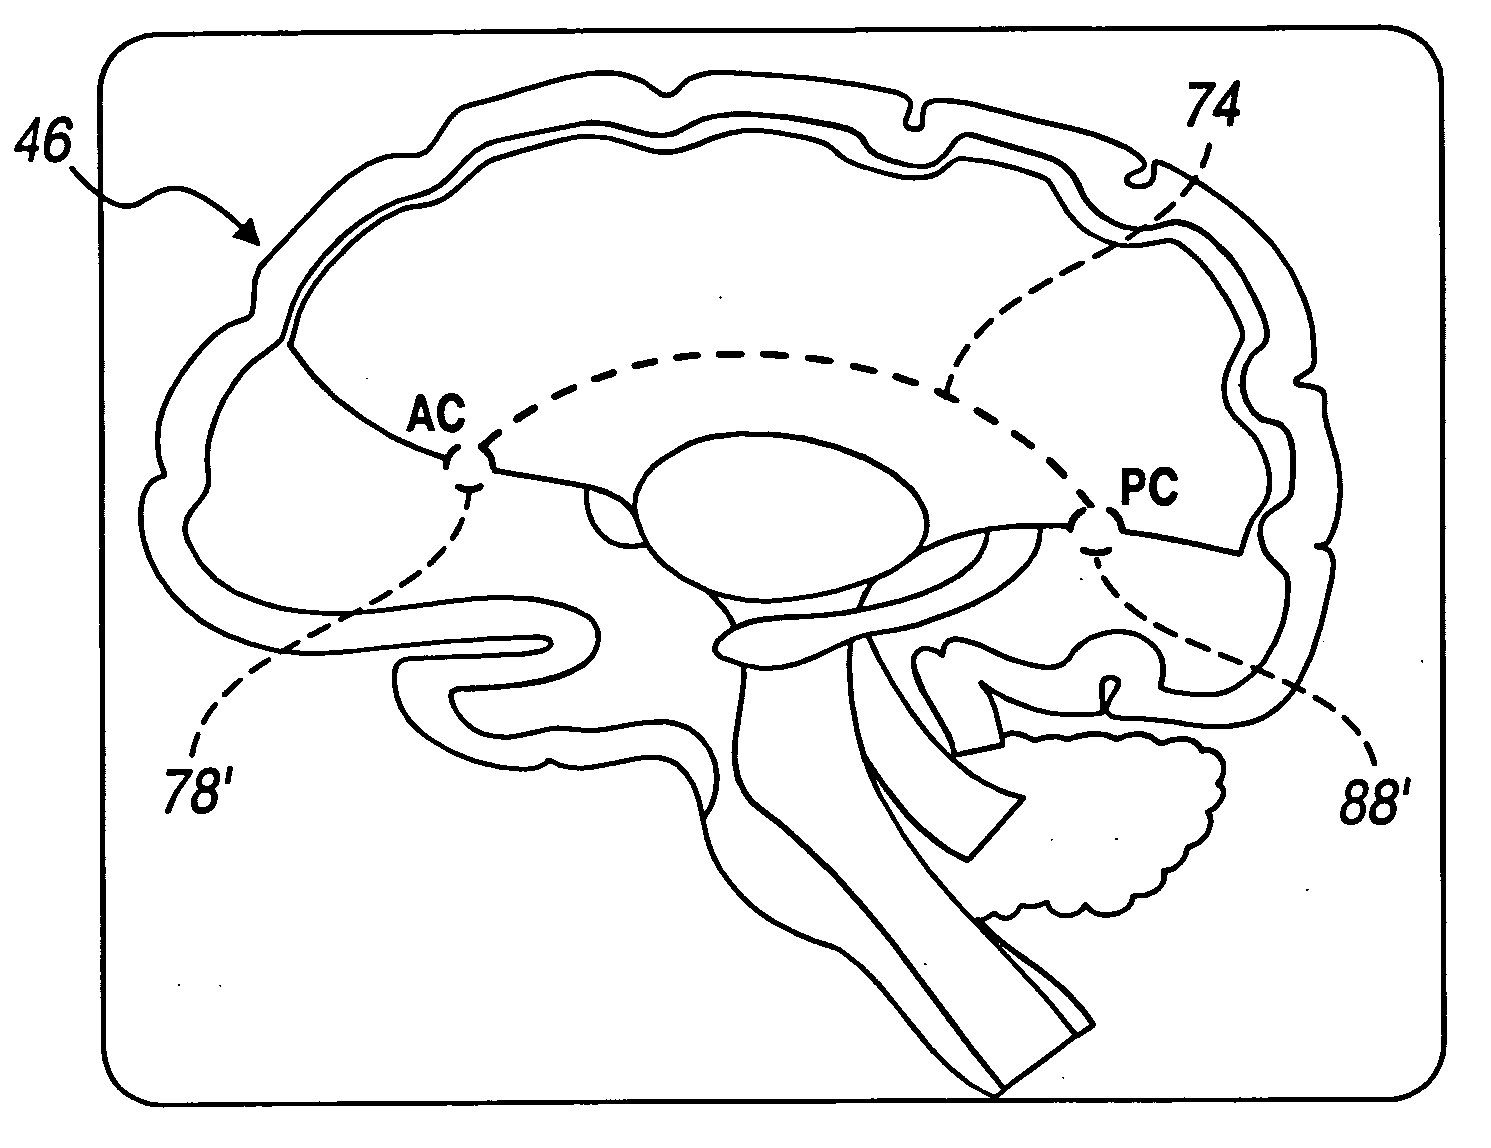 Psychology Brain Anatomy Coloring Page Sketch Coloring Page Brain Anatomy Coloring Pages